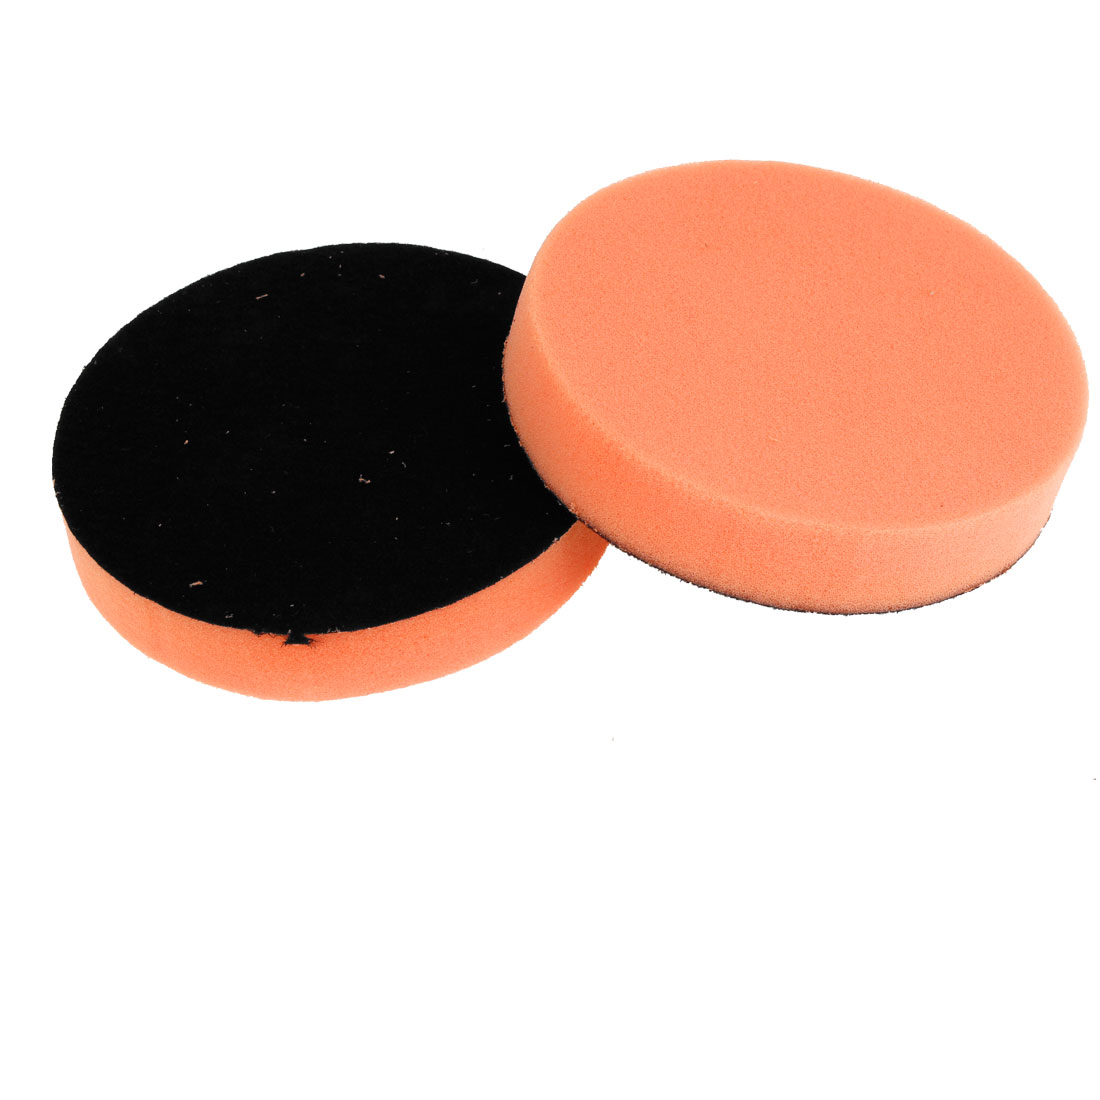 "2PCS Black Orange Rounded Sponge Polisher Scourer Tool 5"" Diameter for Car"